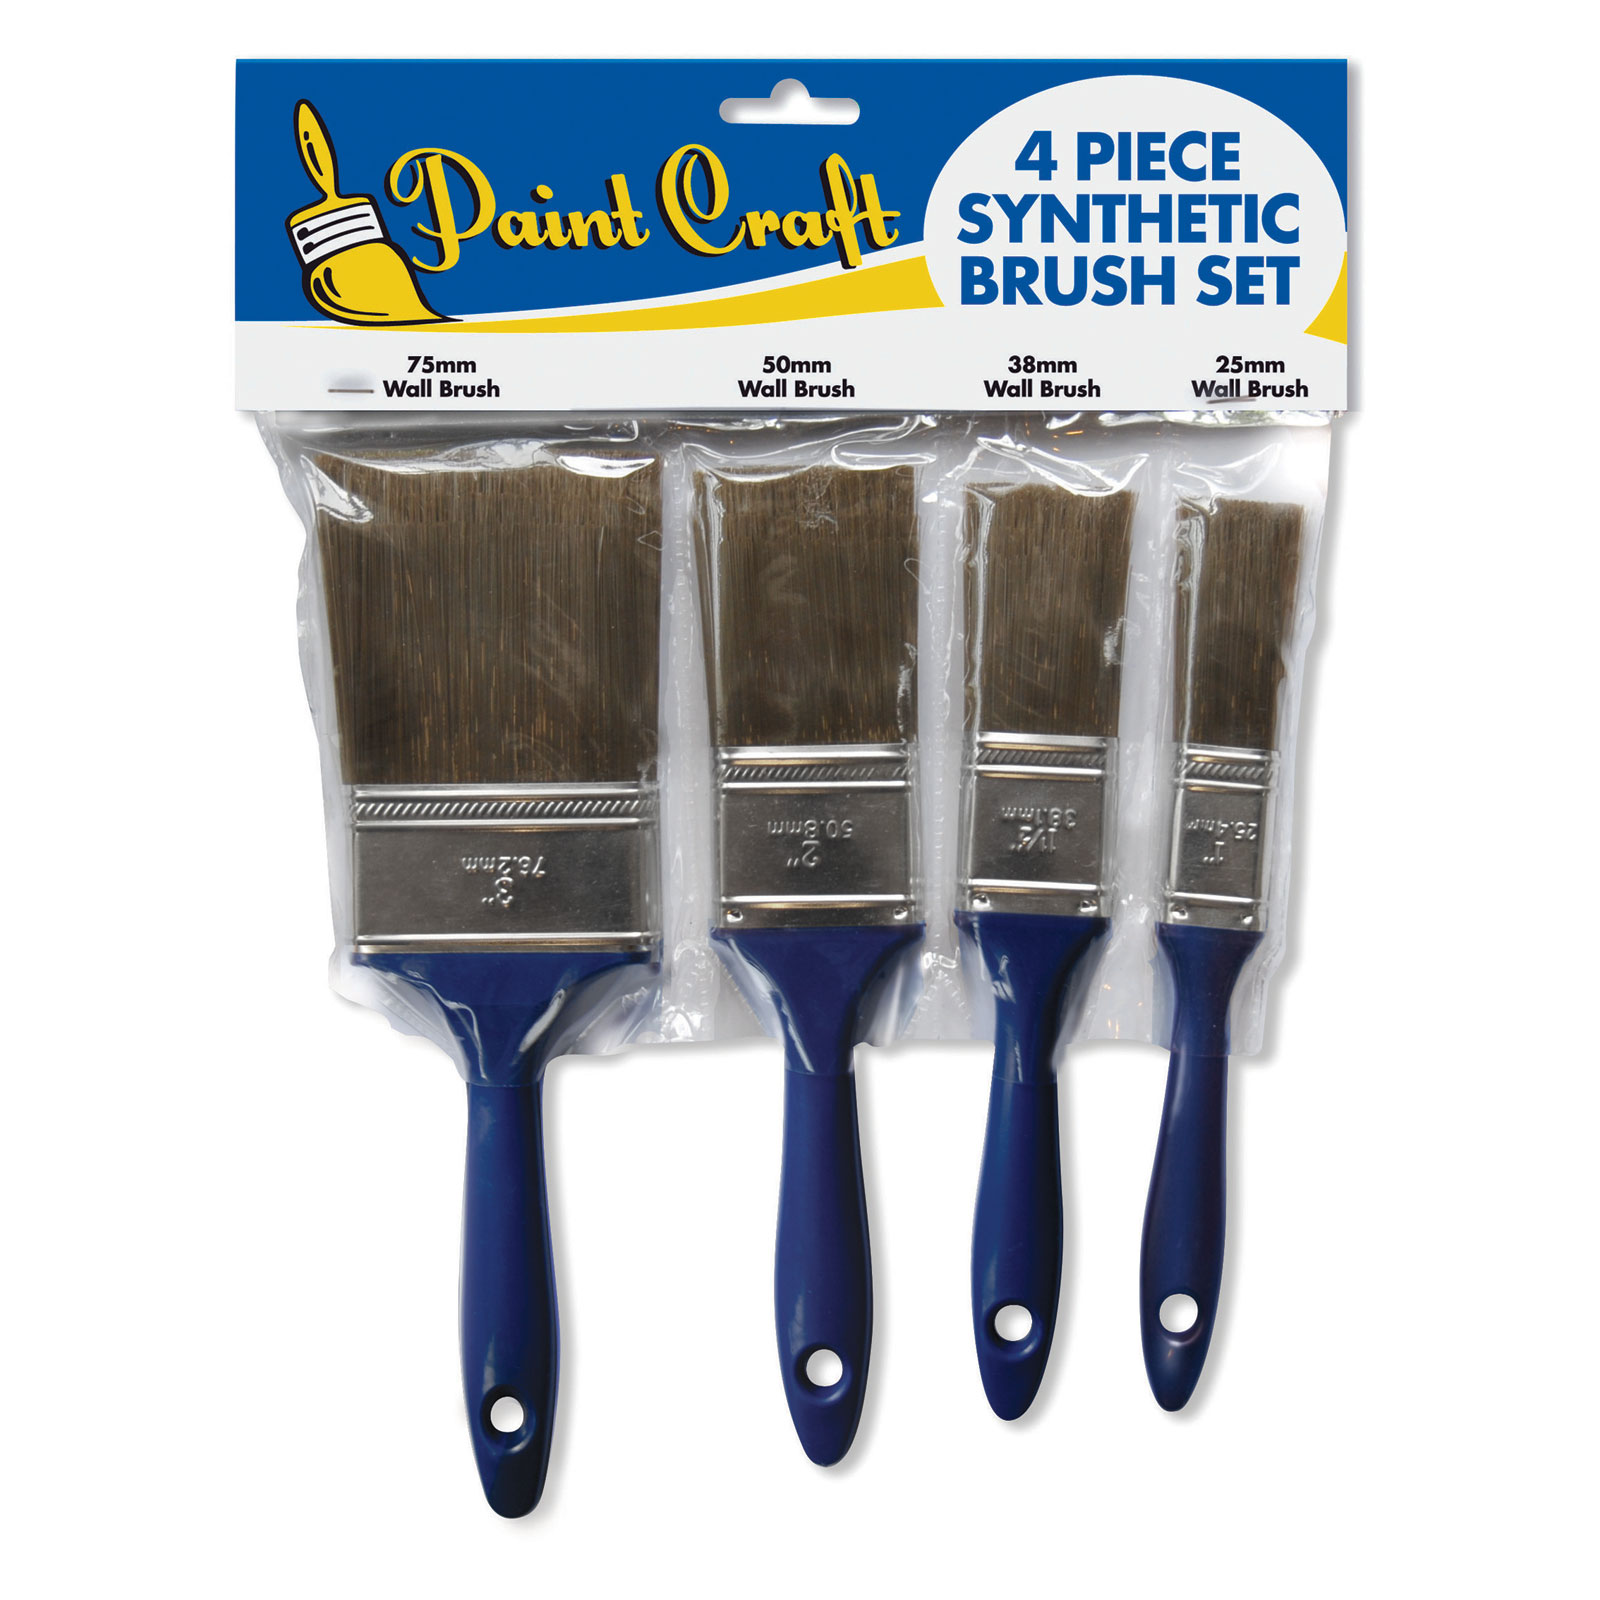 Paint Craft 4 Piece Synthetic Brush Set (25/38/50 & 75mm)